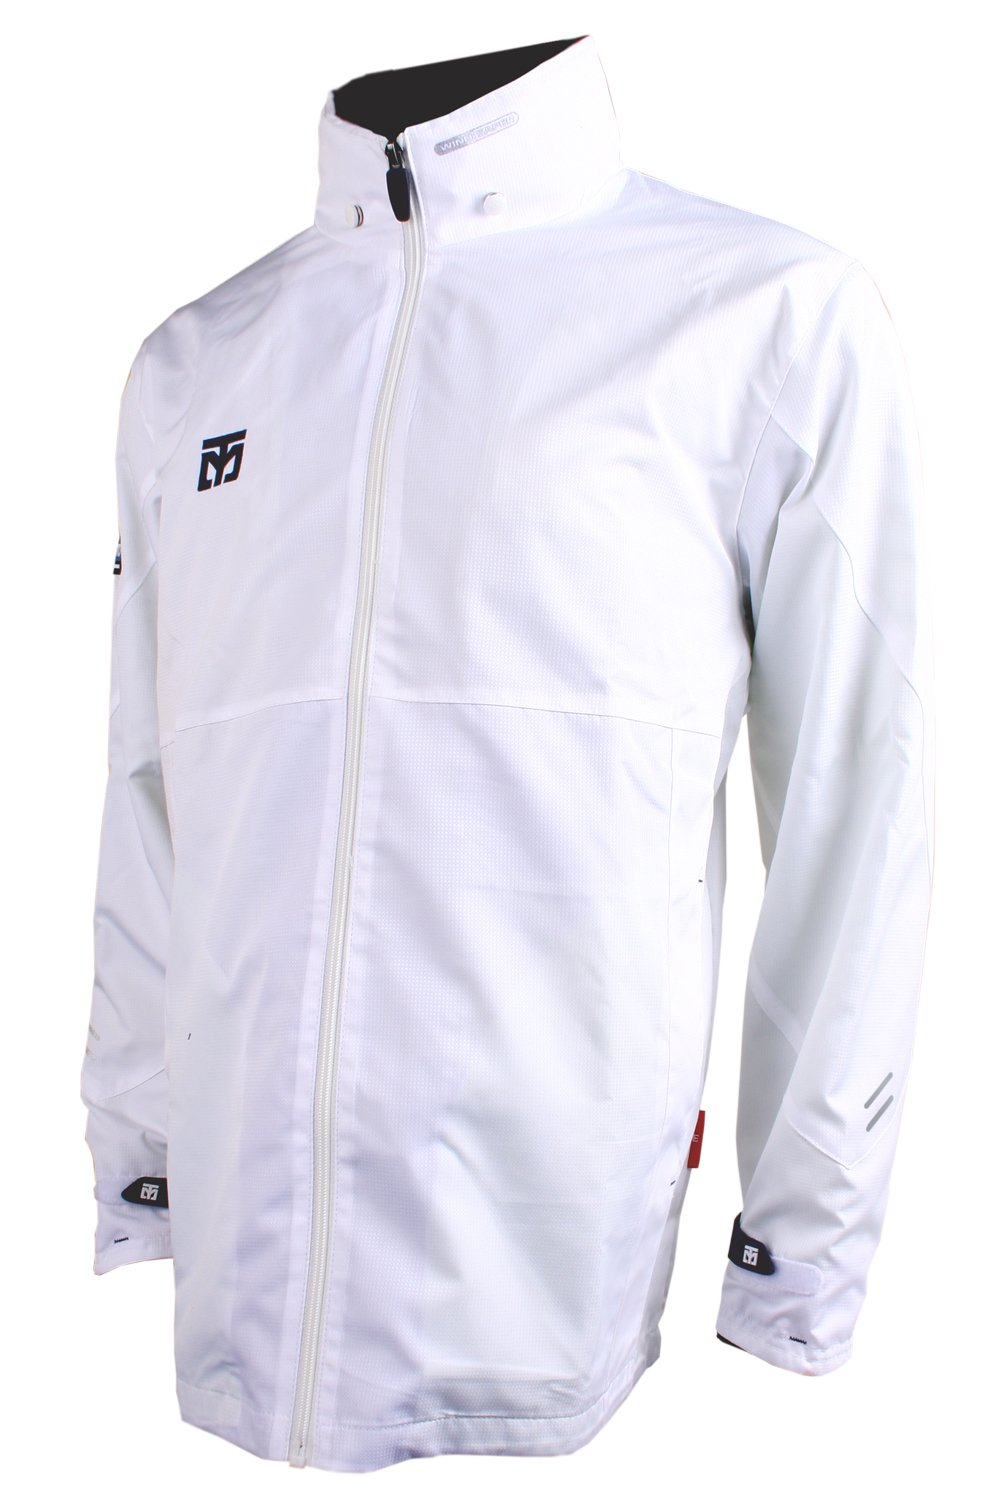 Mooto Wings Wind Breaker 4 Color Jacket Training TaeKwonDo 4.26ft to 6.88ft (White, 160(150cm-160cm or 4.92ft-5.24ft)) by Mooto